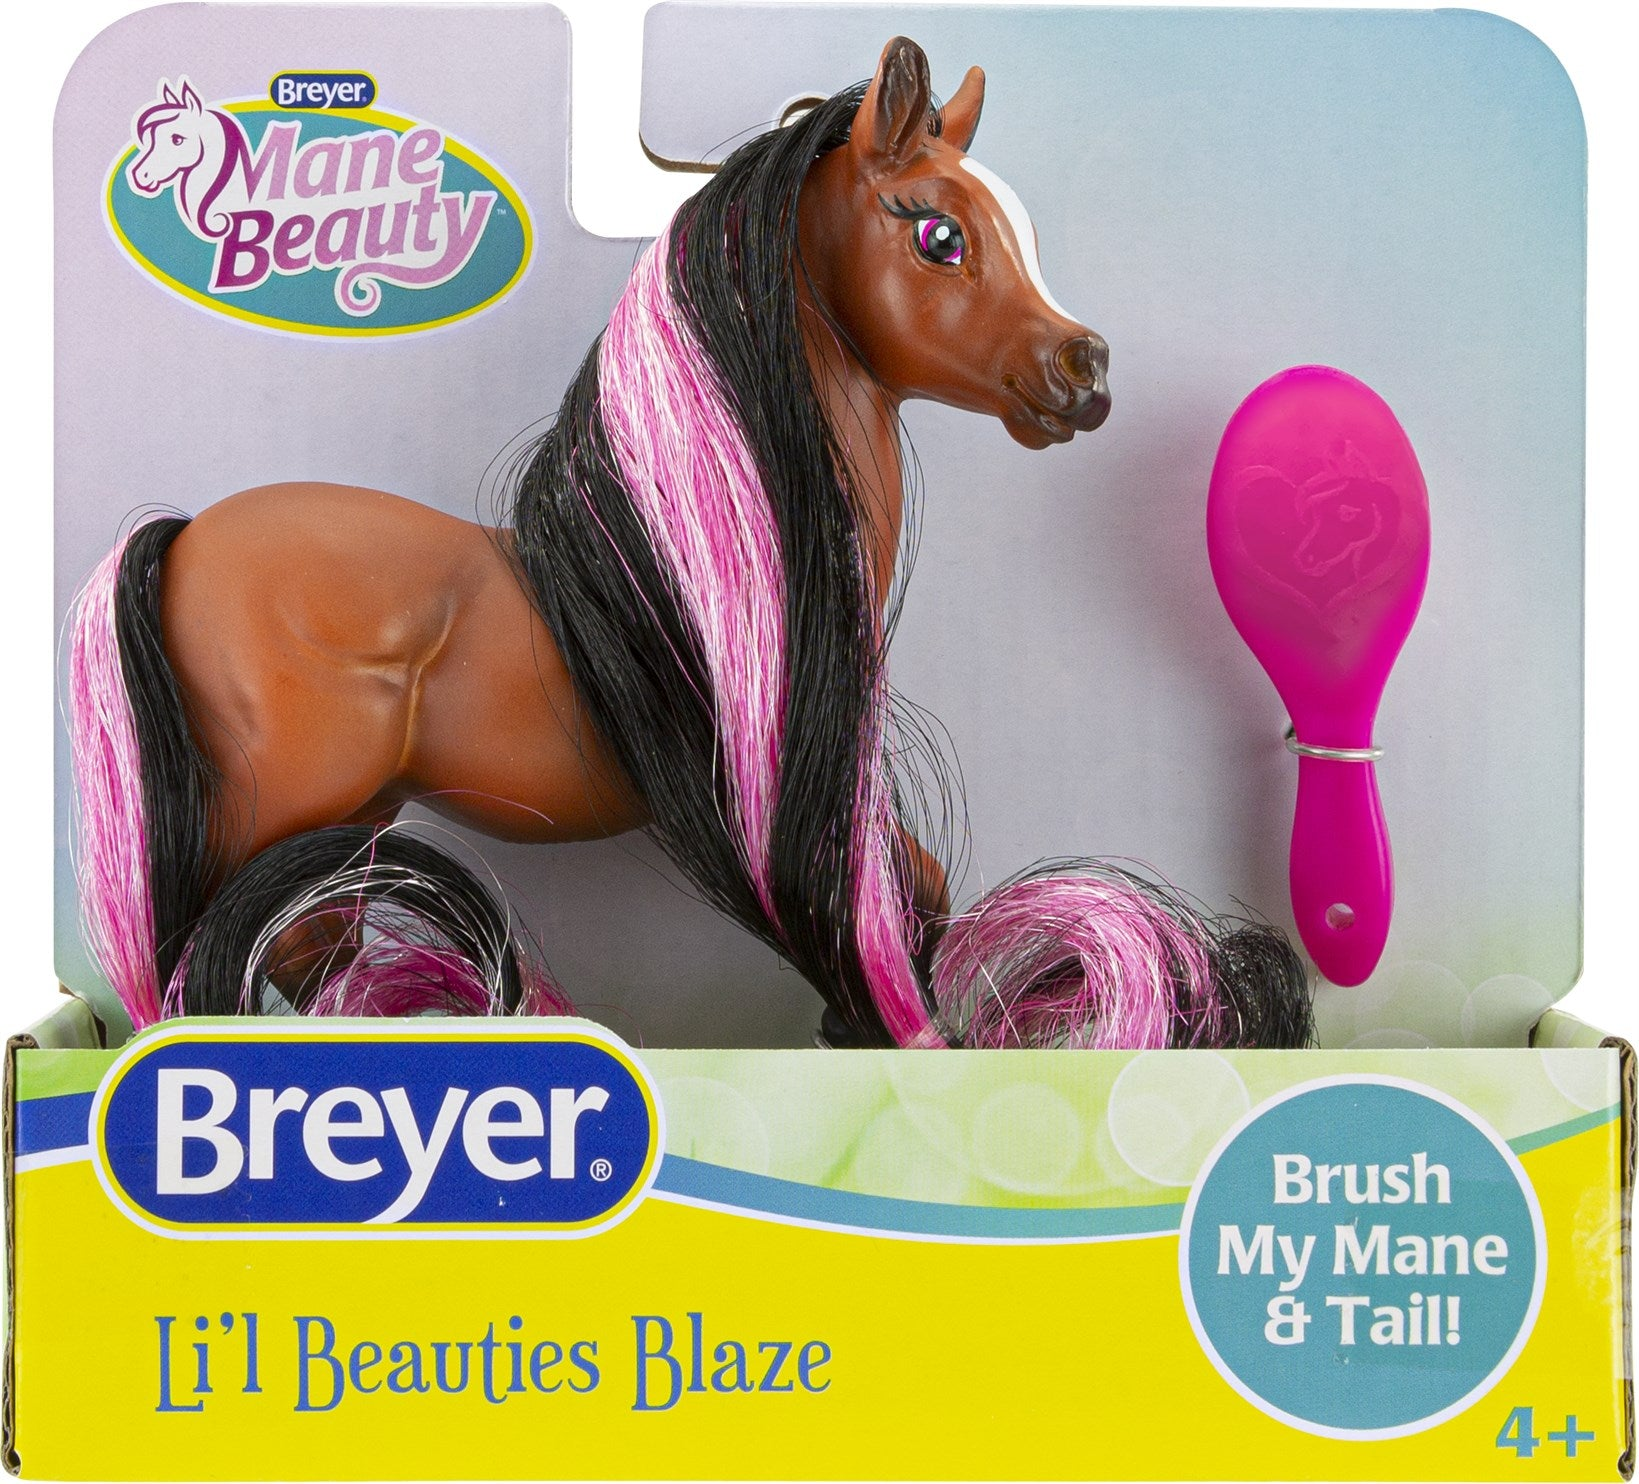 Breyer Mane Beauty Li'l Beauties Blaze